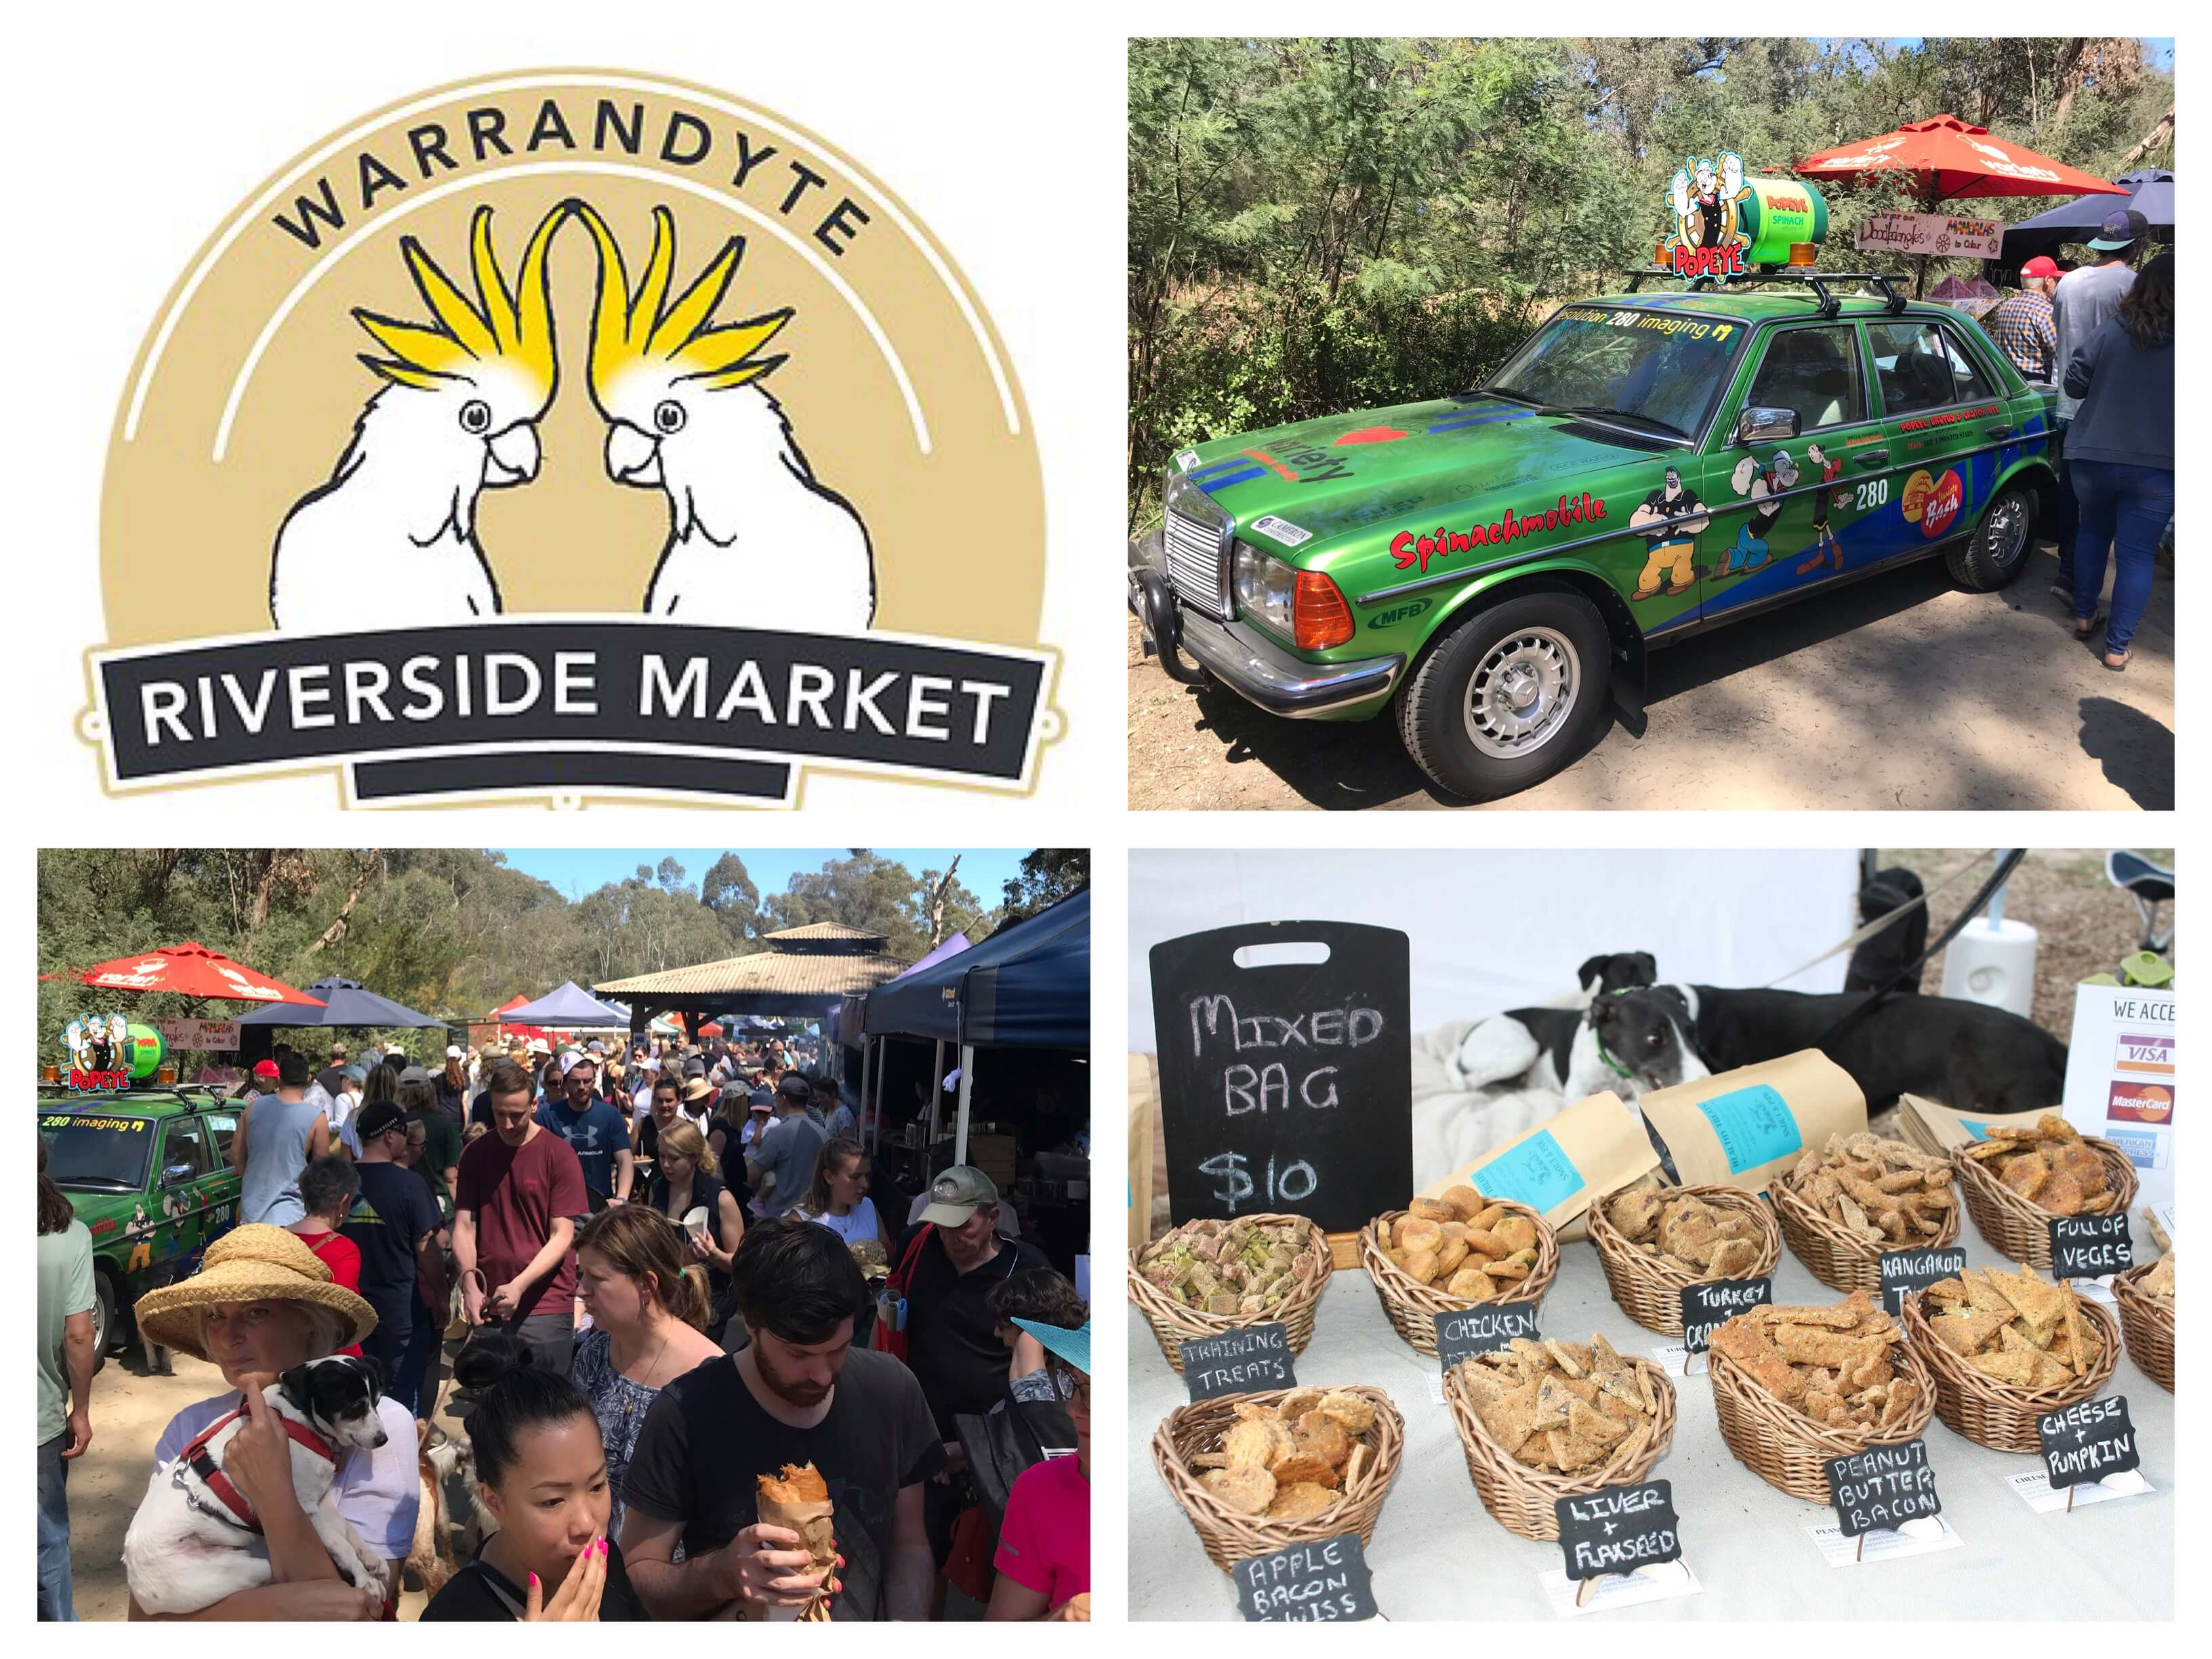 Warrendyte Riverside Market